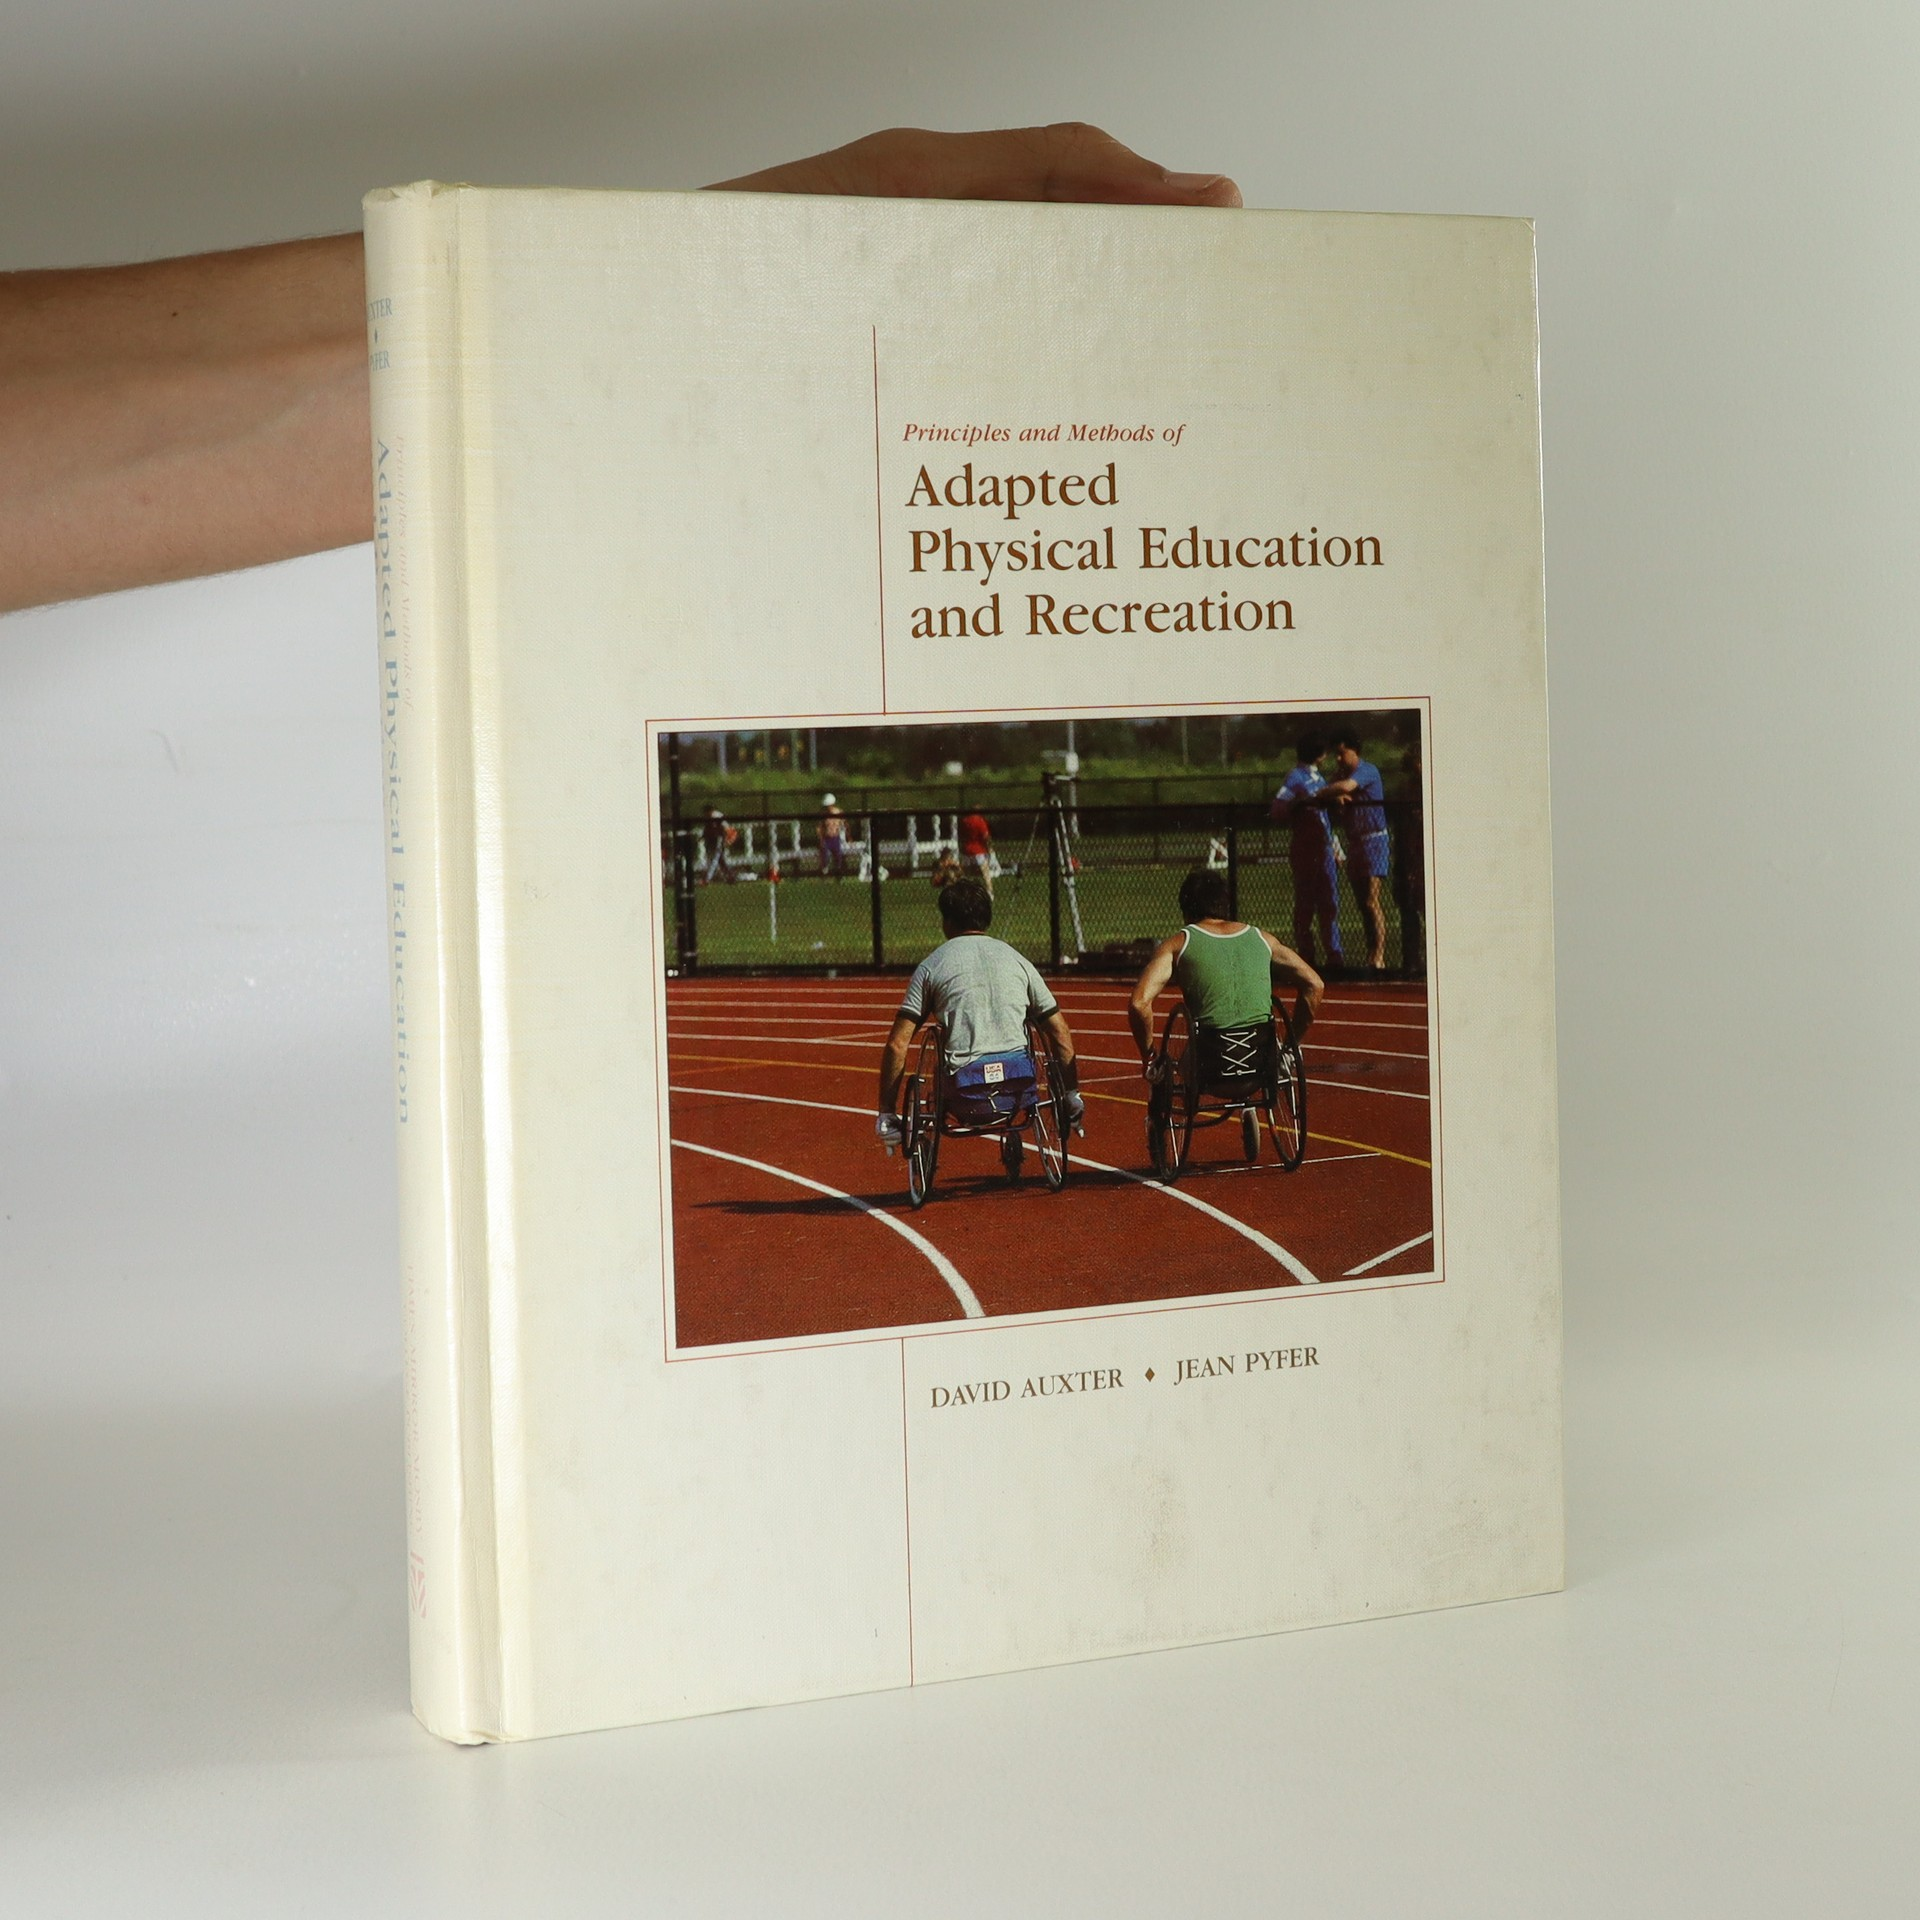 antikvární kniha Principles and methods of adapted physical education and recreation., neuveden